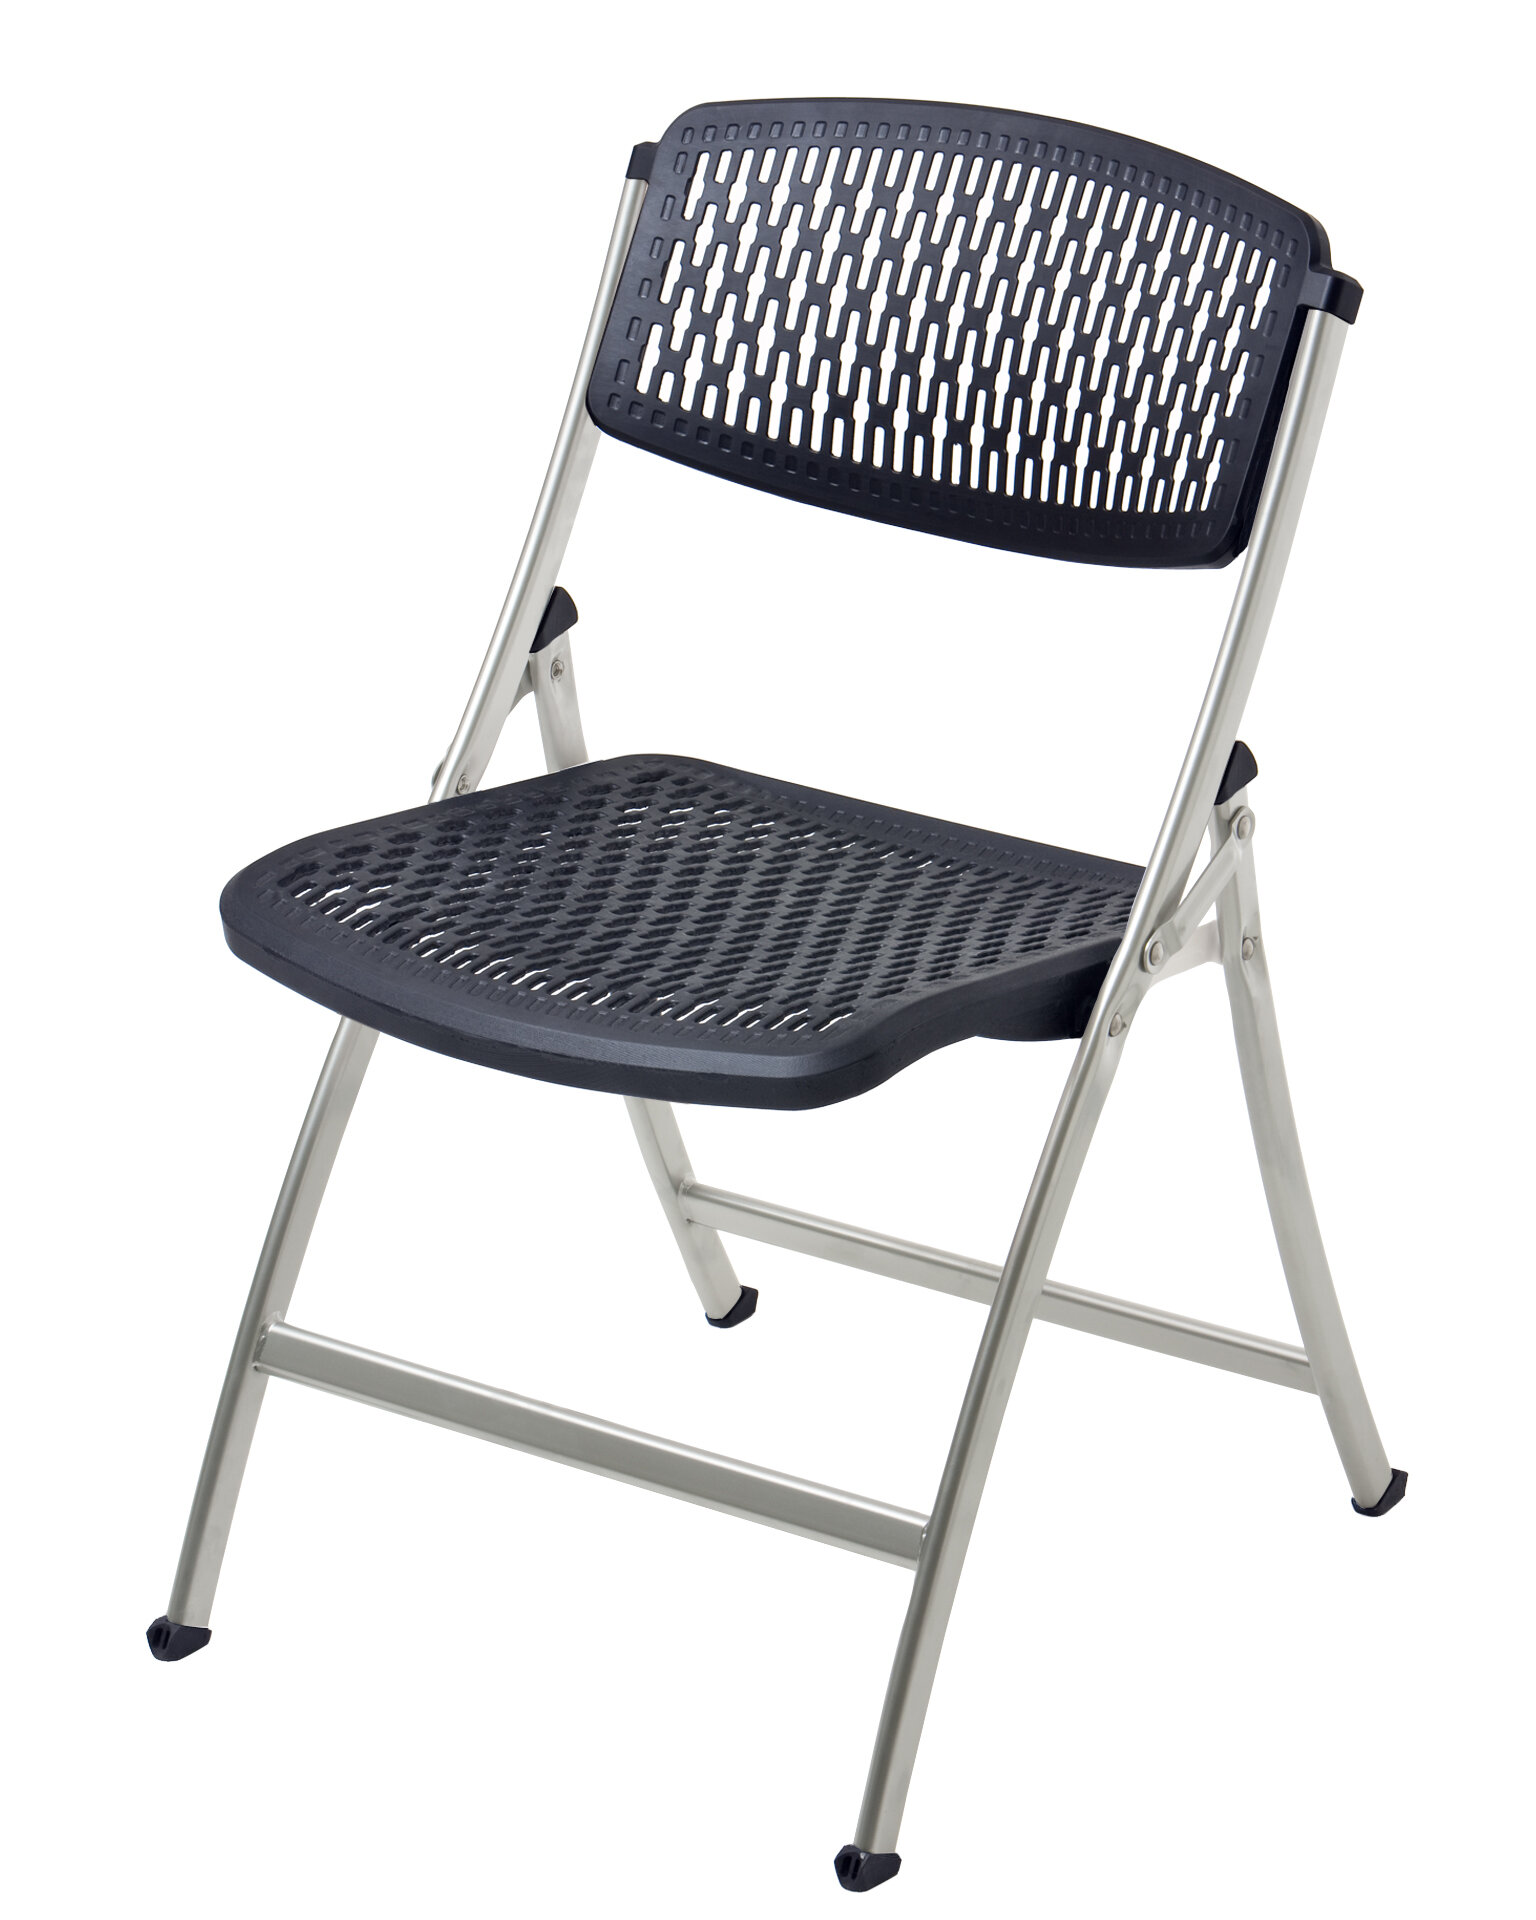 Mity Lite Flex e Folding Chair You ll Love